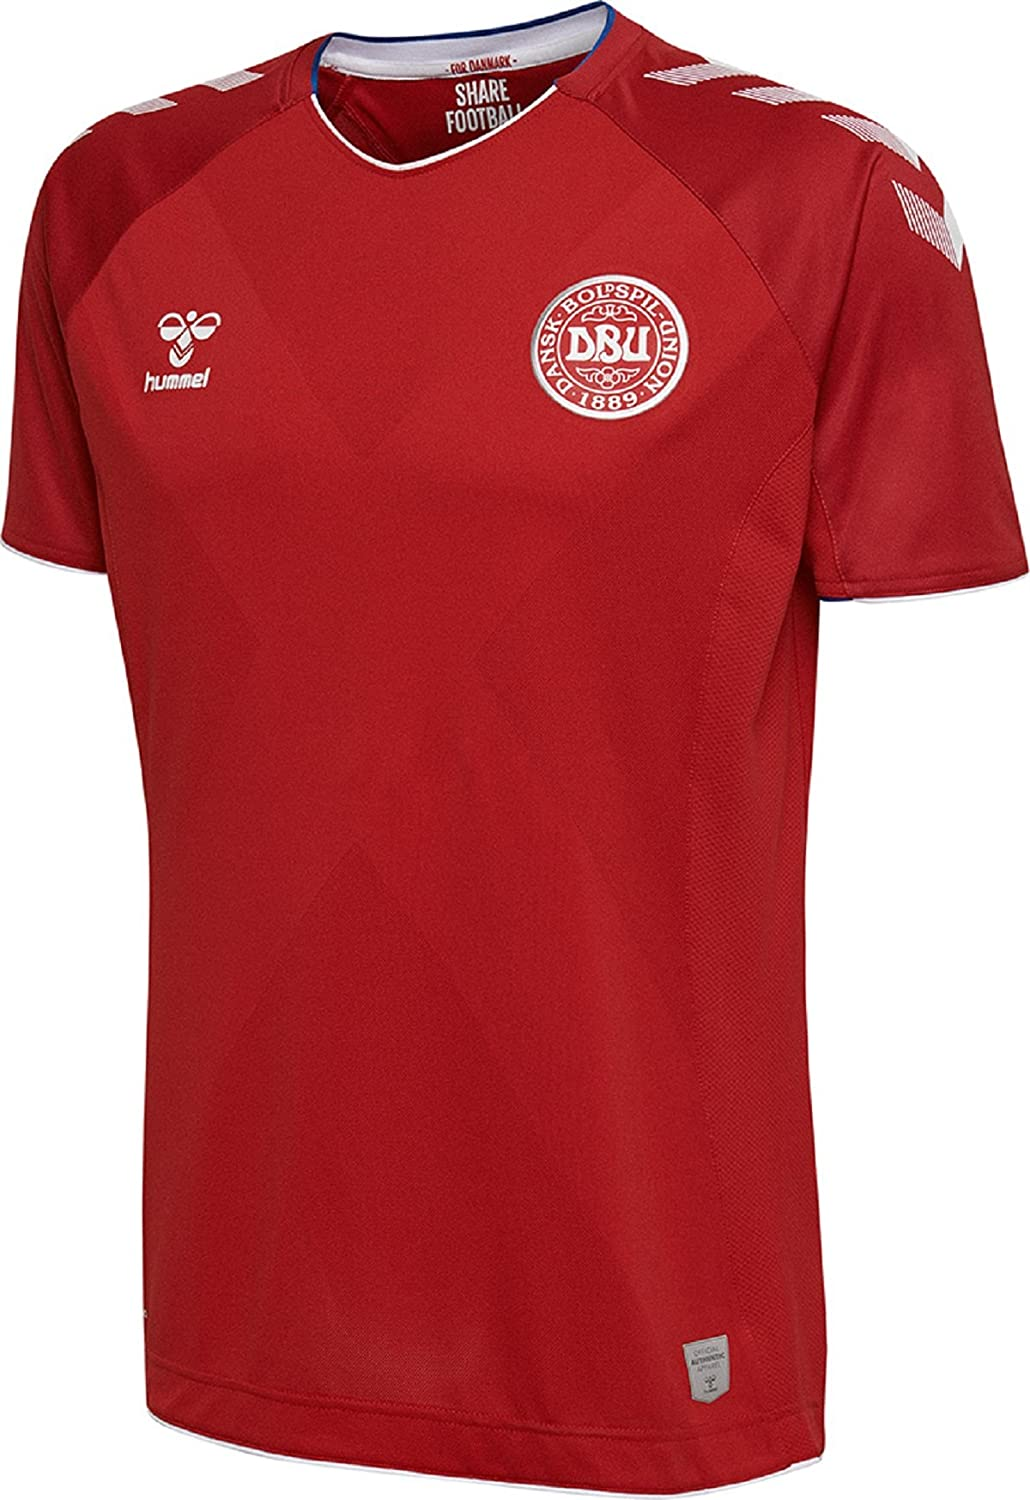 【正規取扱店】 2018-2019 Hummel Denmark Home Hummel XXL Home Football Shirt B07CZPZYHQ XXL Adults|Red Red XXL Adults, タルタルーガ:cf7449b0 --- svecha37.ru